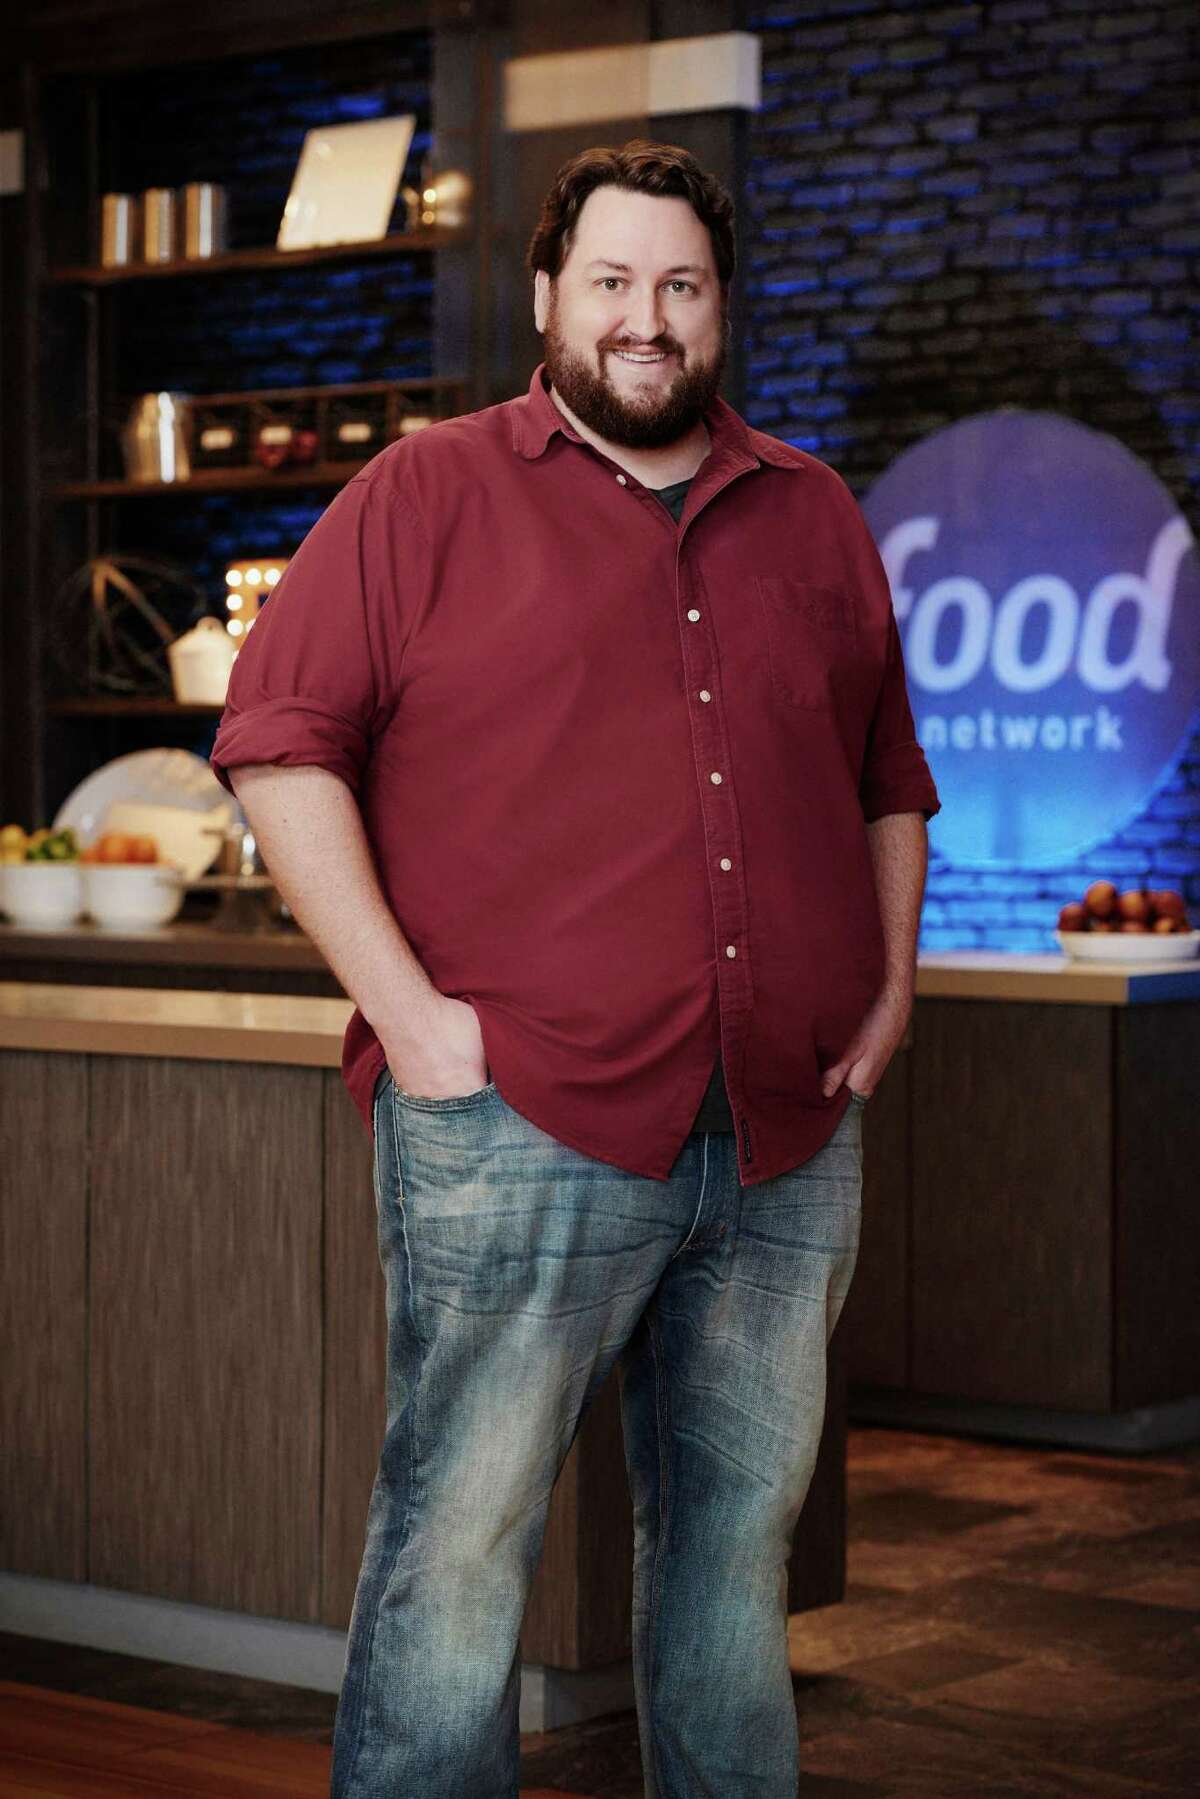 """Jay Ducote, of Baton Rouge, La., who grew up in Sugar Land, is among the top three finalists on Food Network's """"Food Network Star."""" The show's finale will be broadcast Aug. 16. Finalist Jay Ducote, as seen on Food Network Star, Season 11."""